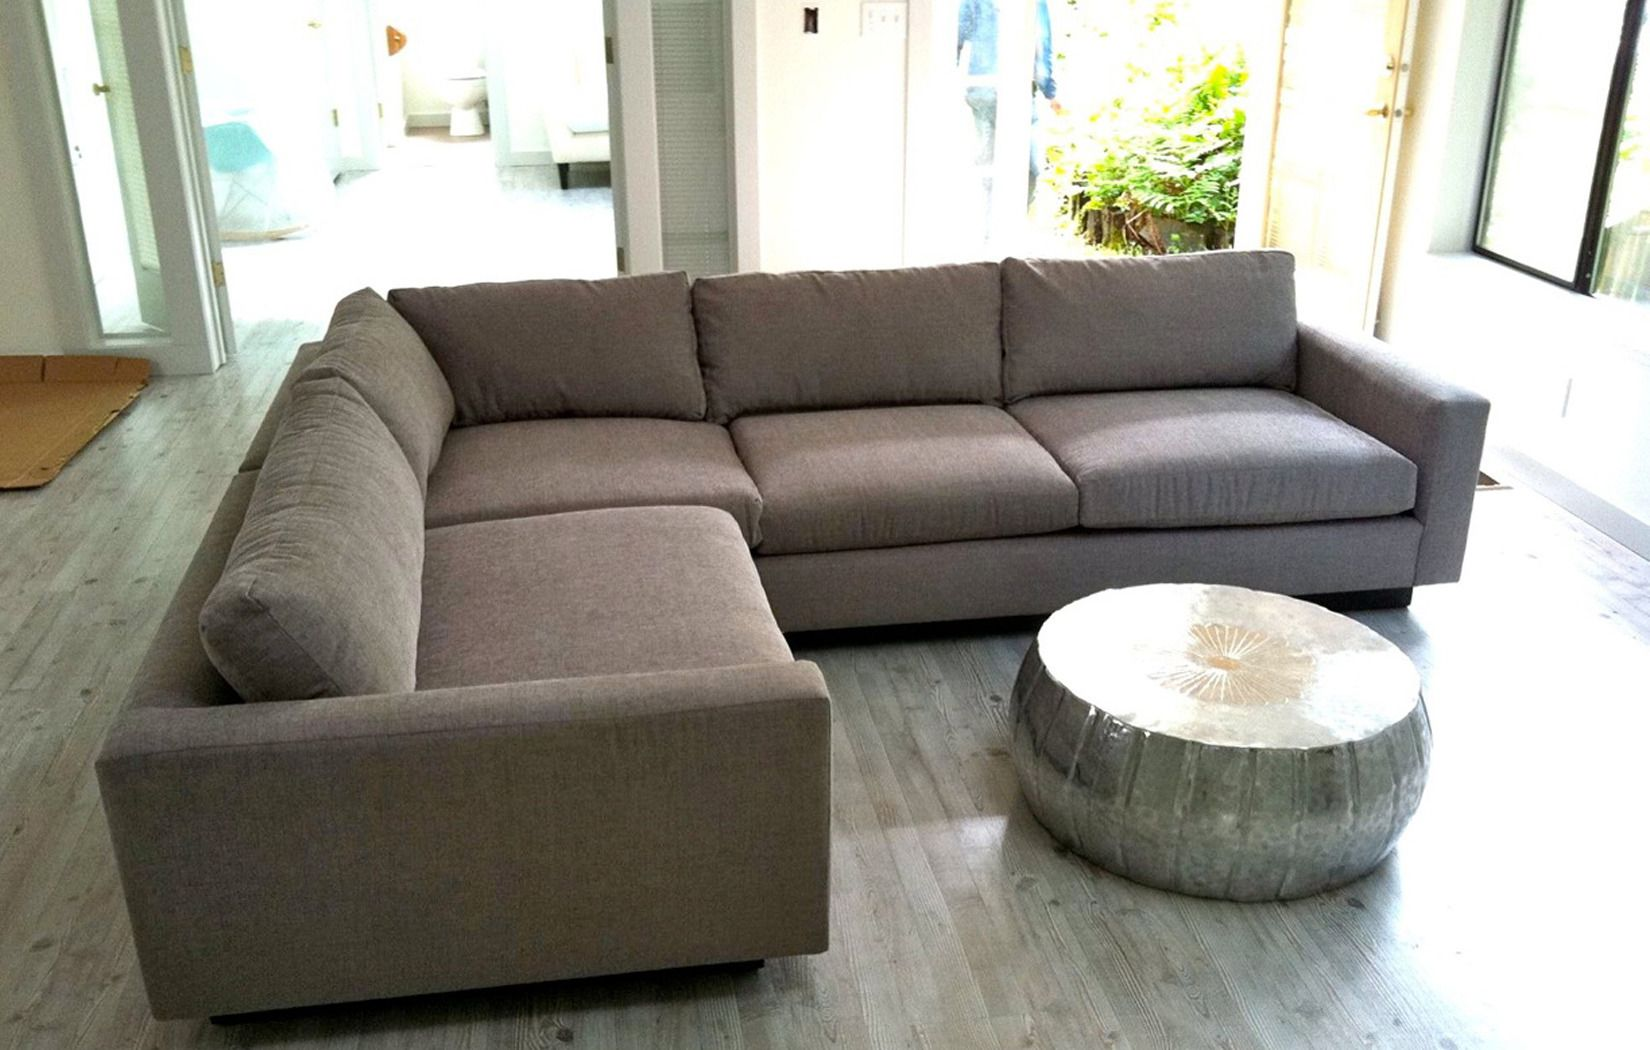 Sofa Seattle Divani Casa Potash Modern Taupe Fabric Set Couch Deep Sectional By The Room Lr